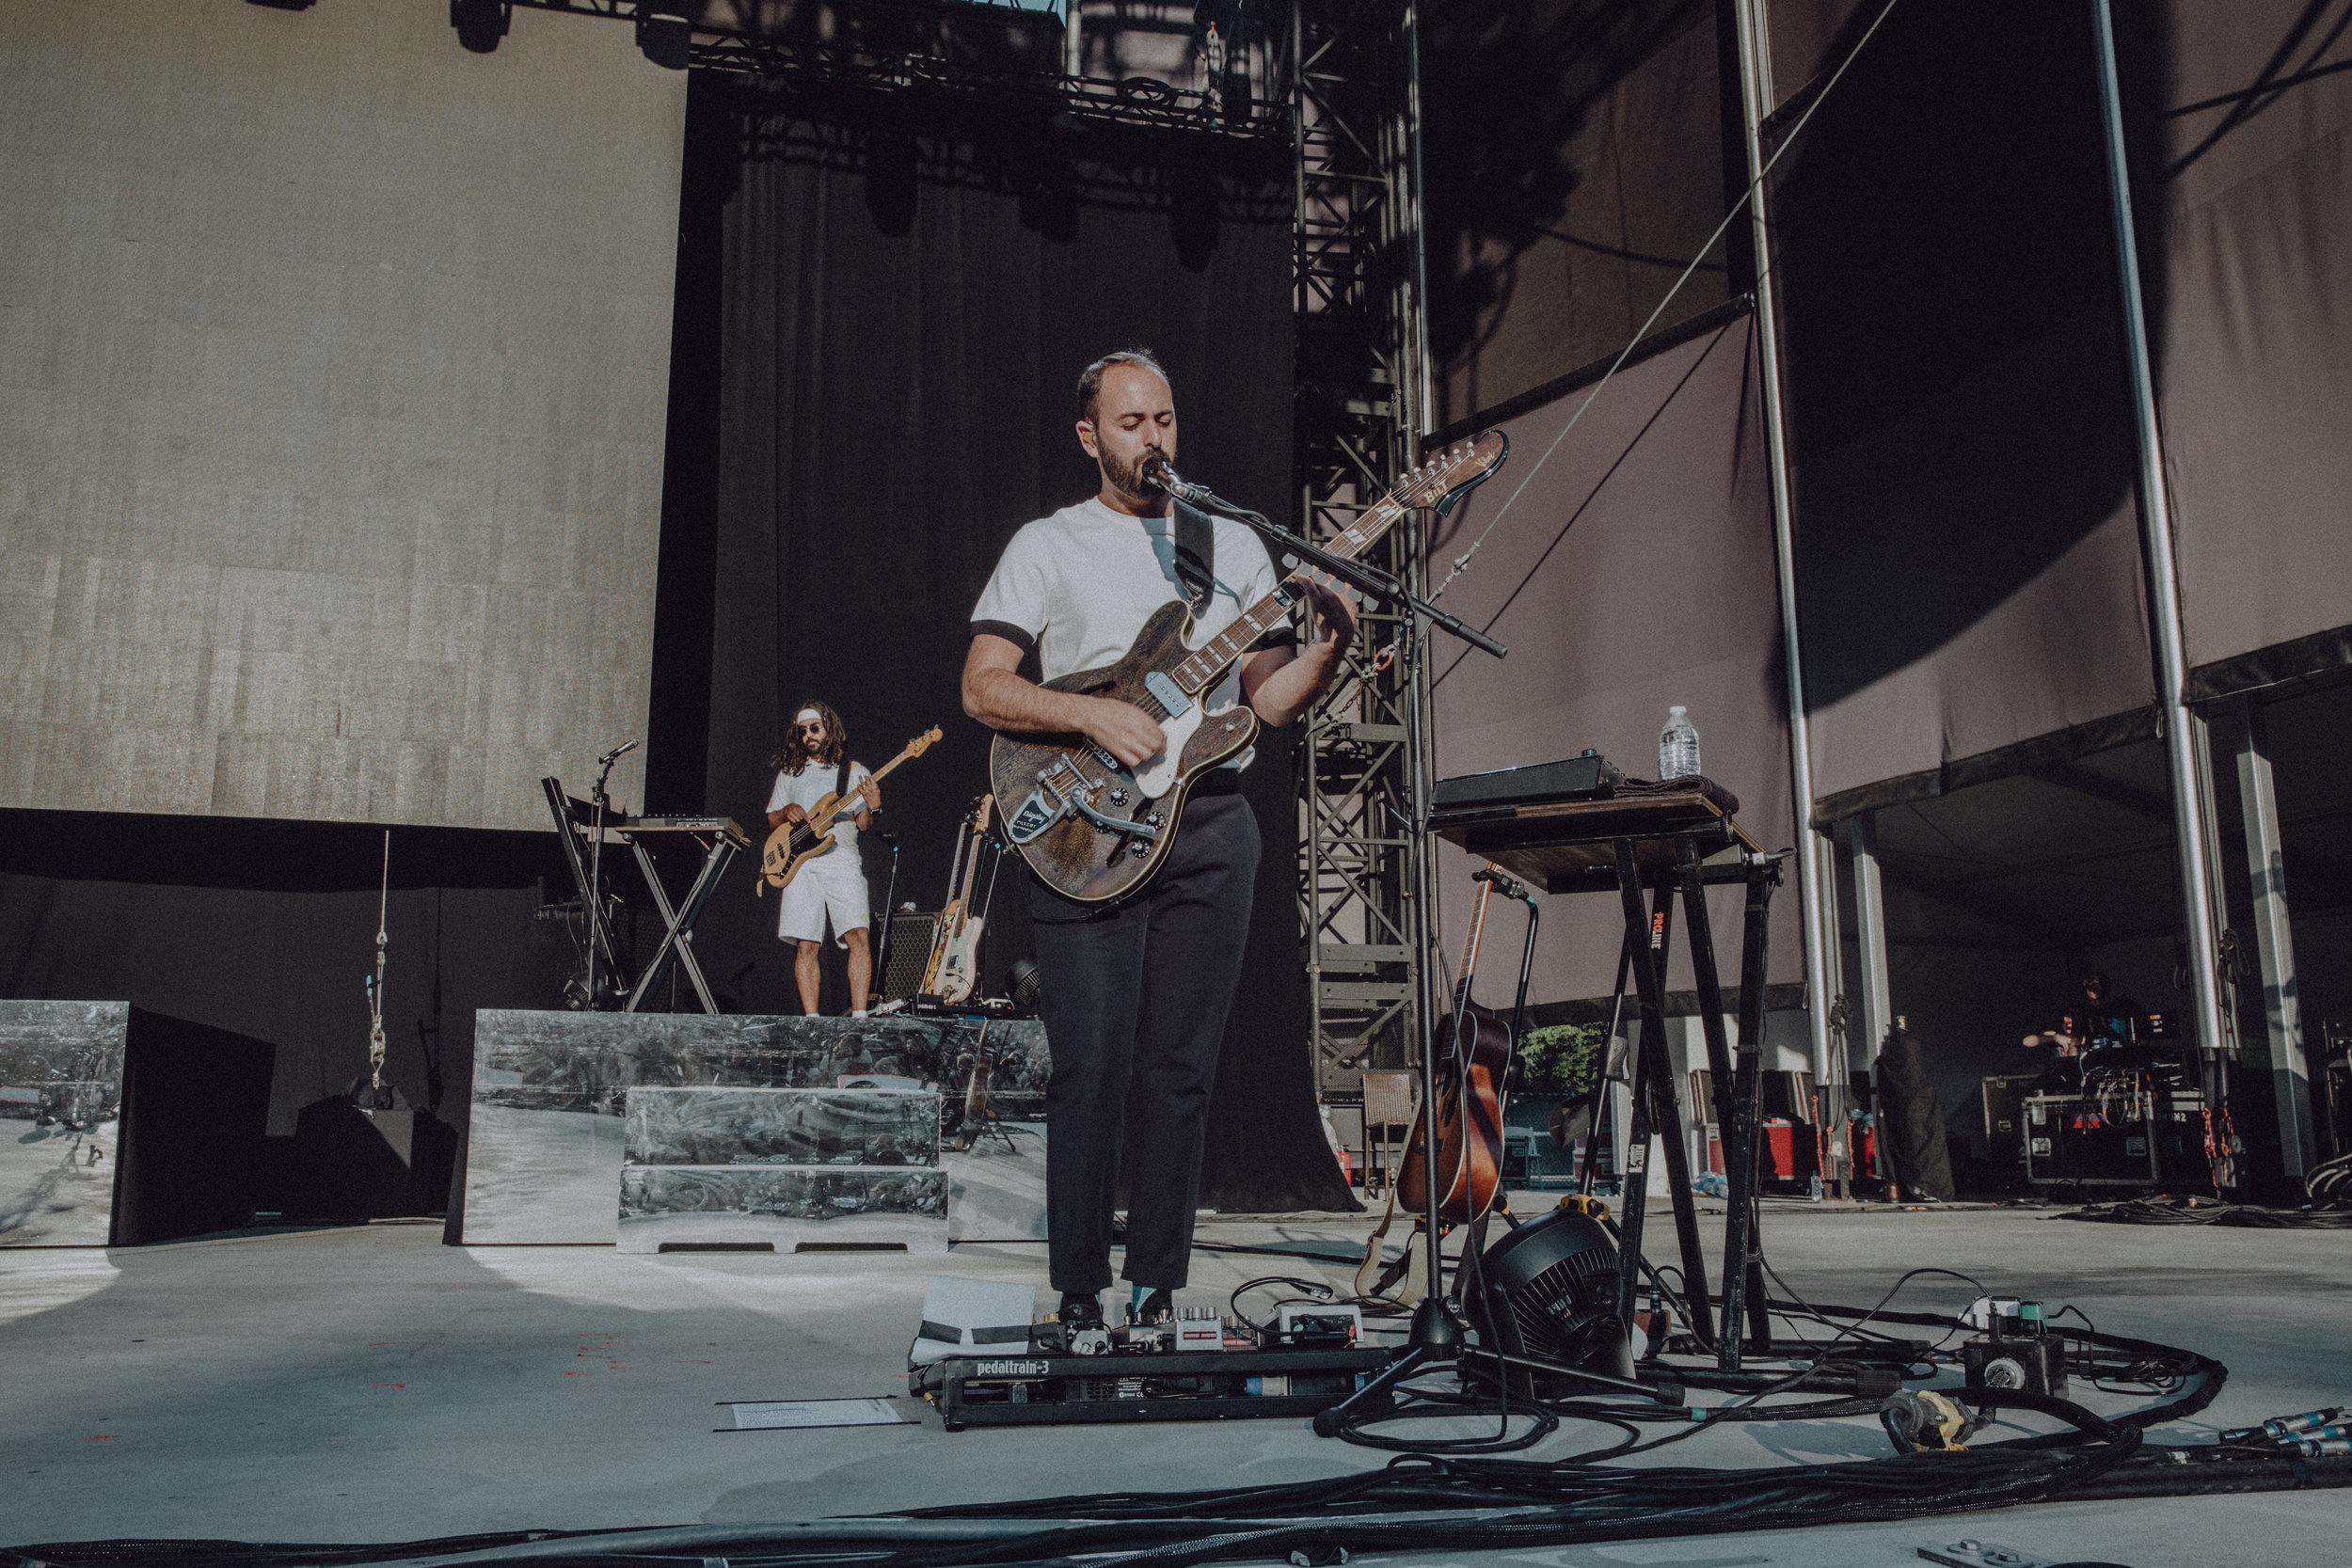 WILLIAMS_YOUNGTHEGIANT-8.jpg